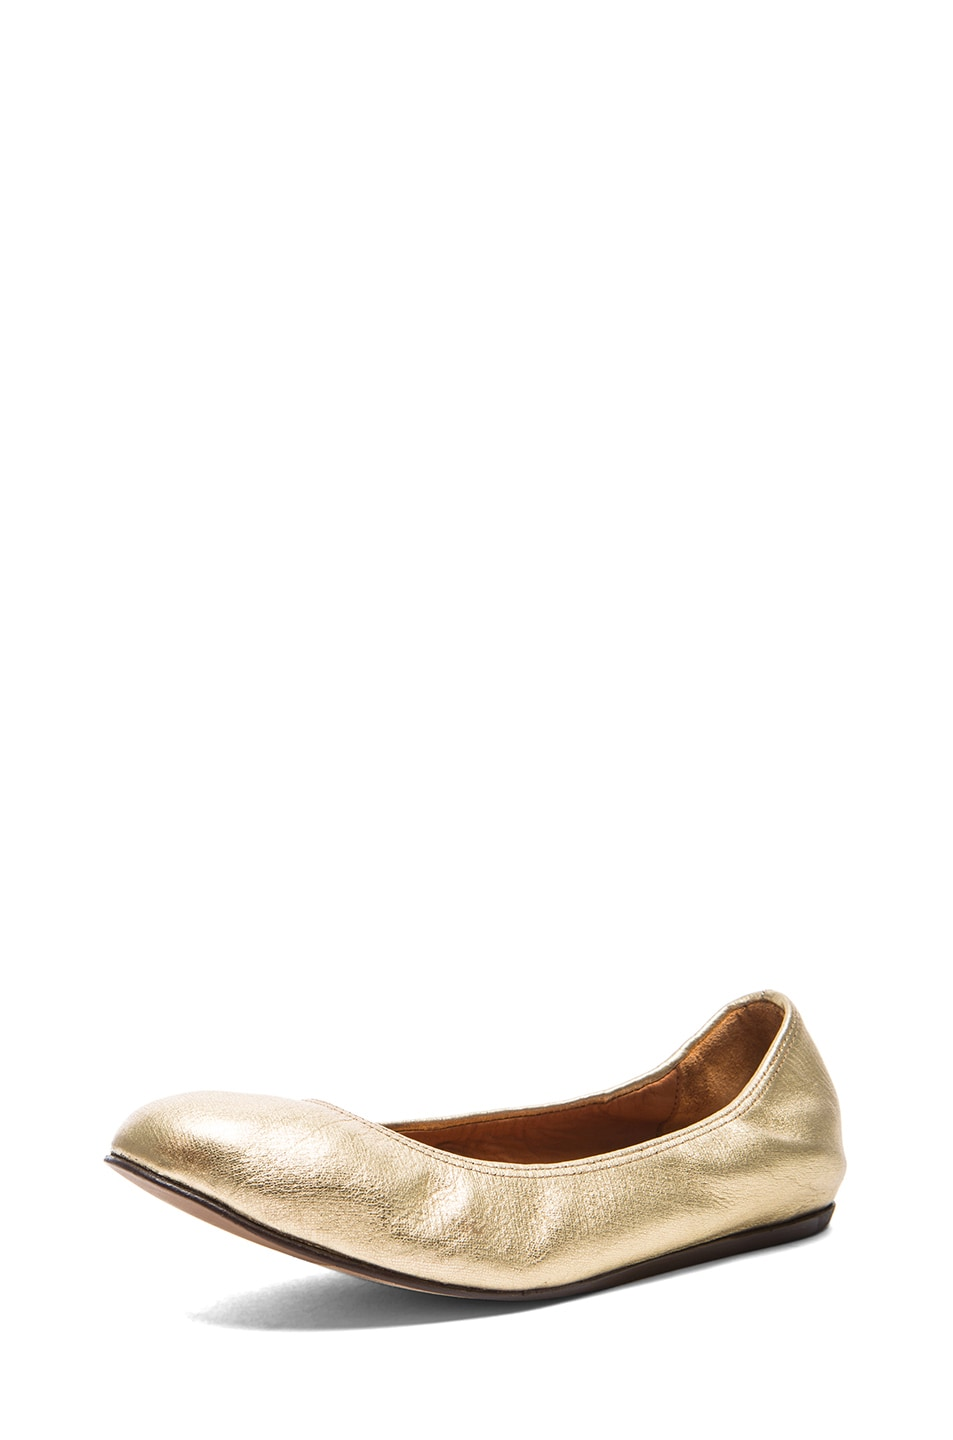 Image 2 of Lanvin Metallic Leather Ballerina Flats in Gold